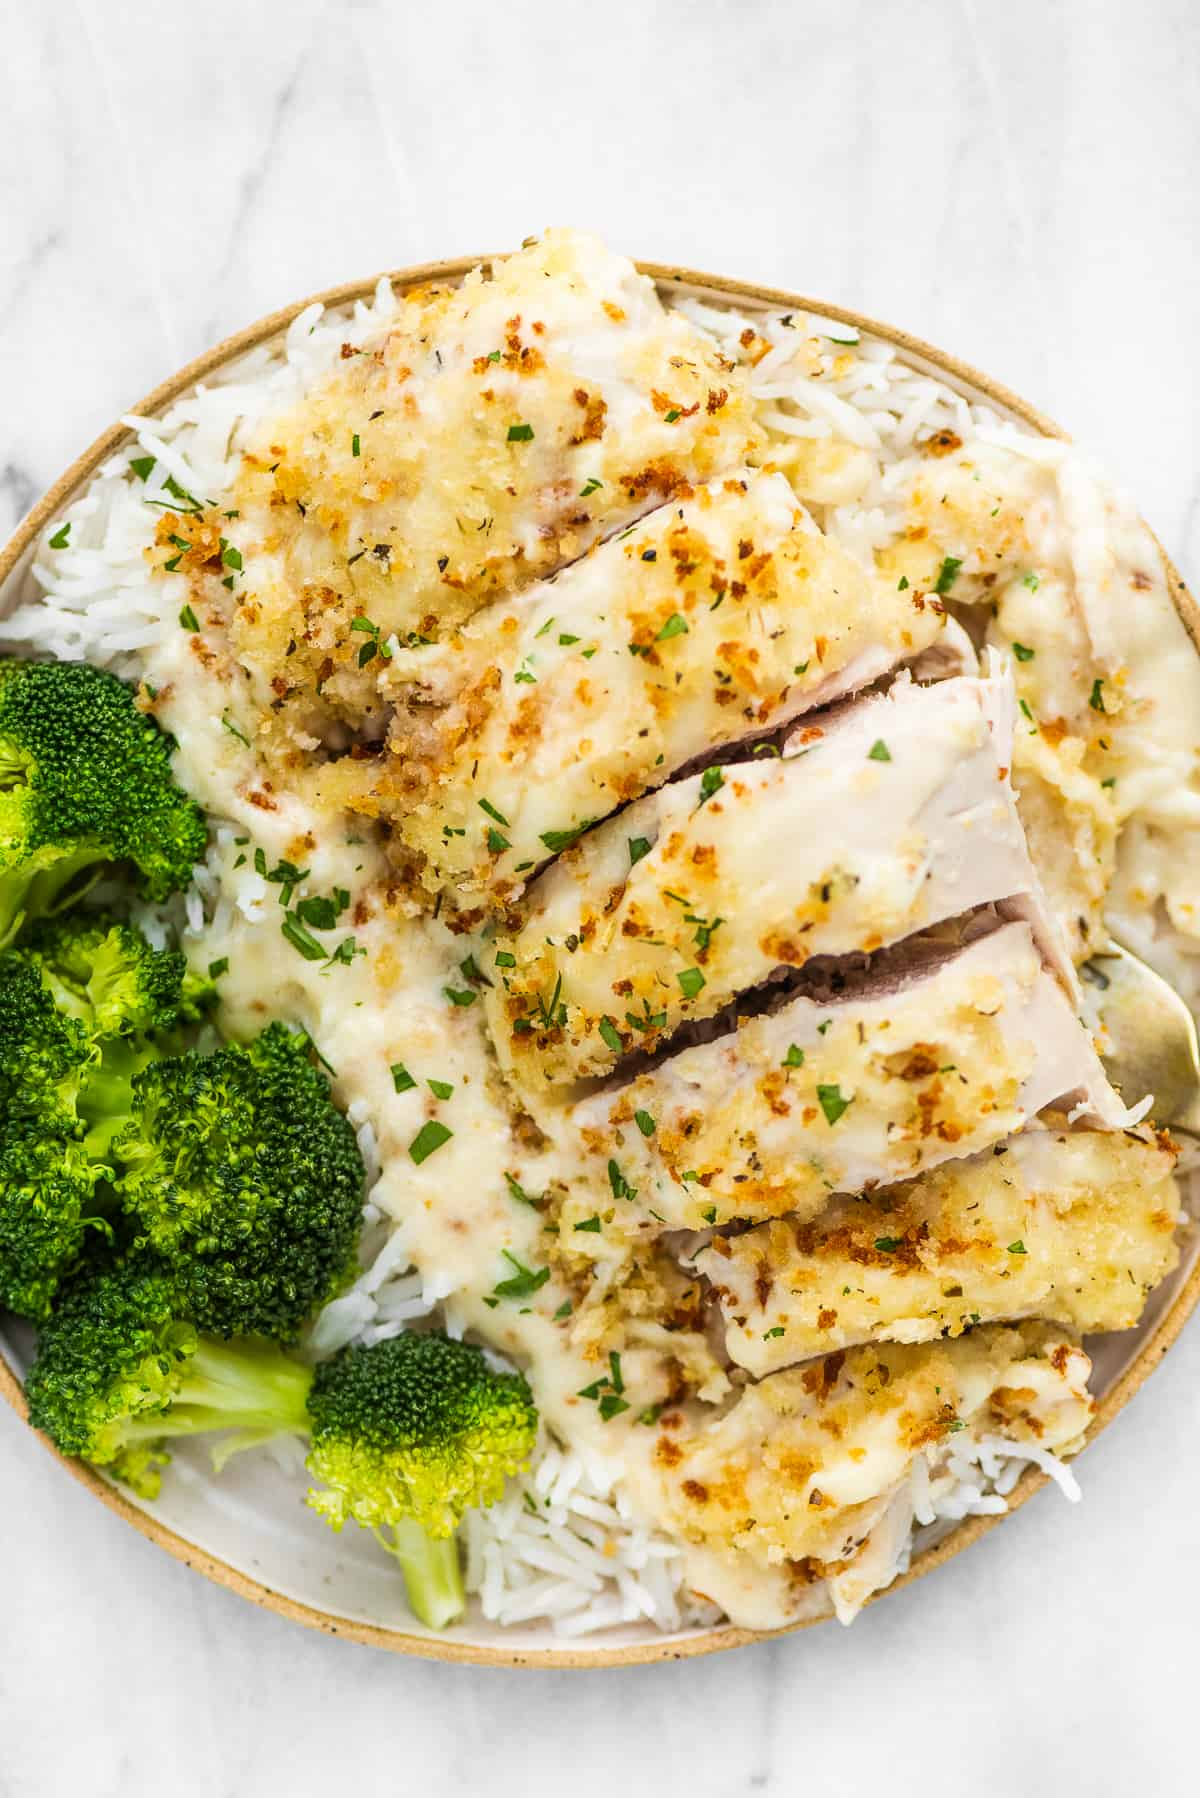 Swiss chicken bake on a plate with rice and broccoli.